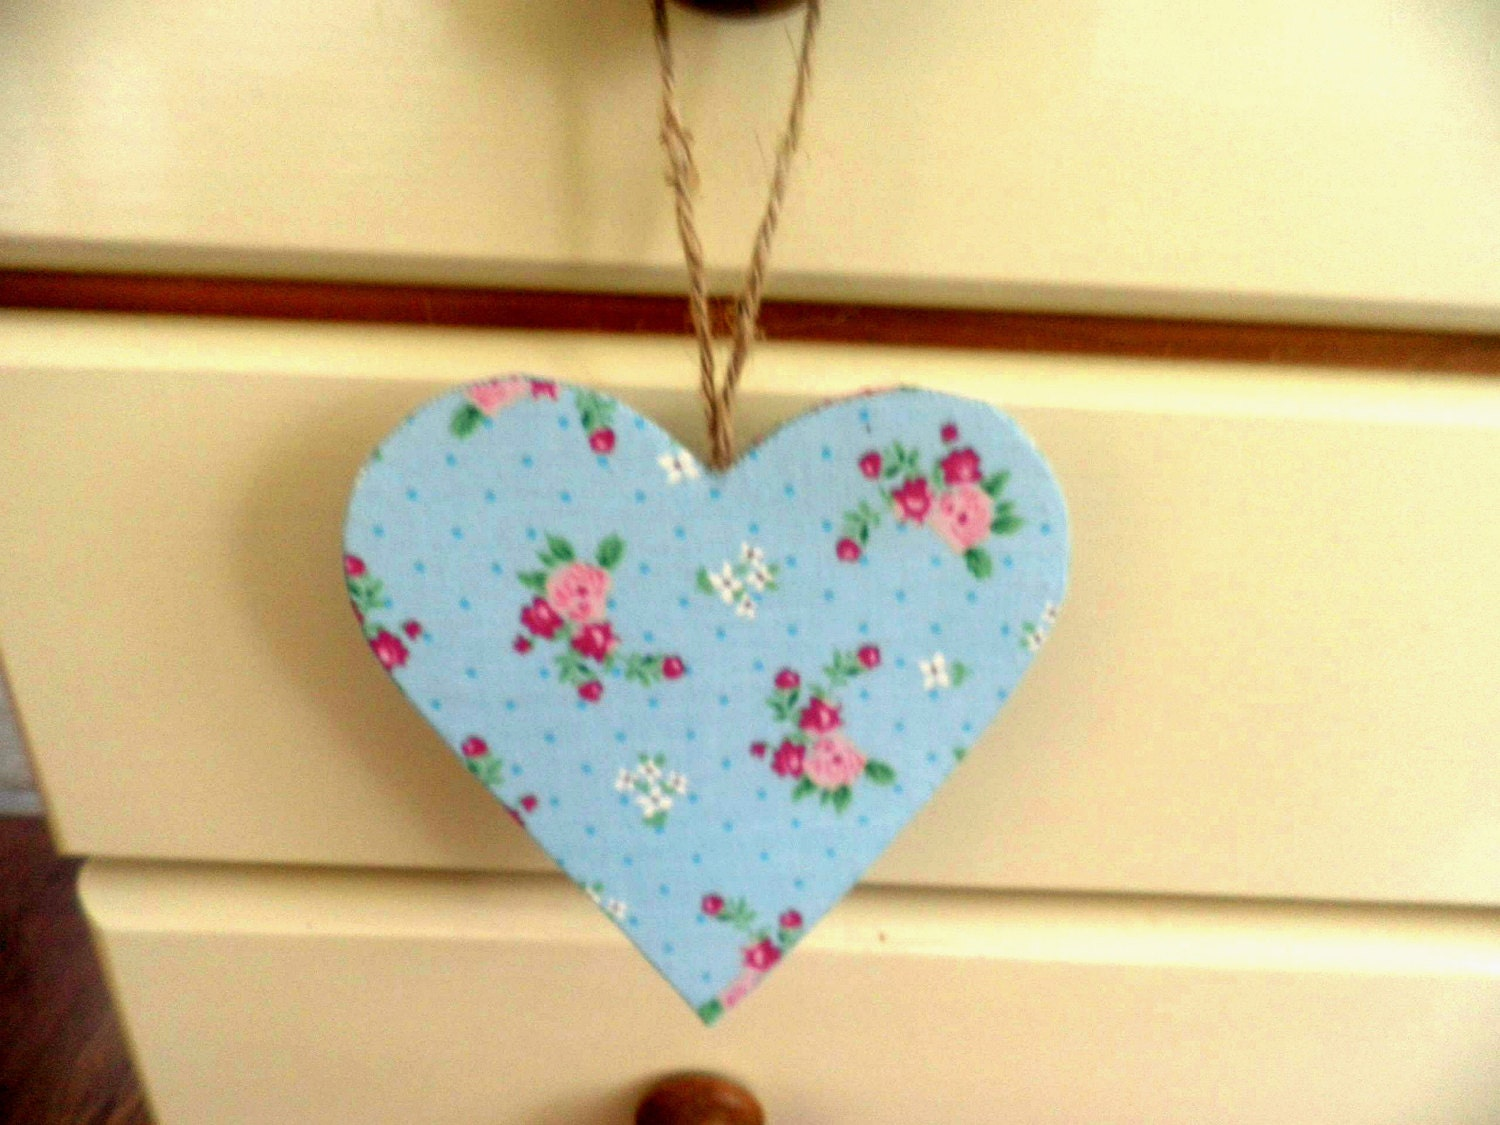 Decorative Heart, Heart Wall Hanging, Heart Decoration ...